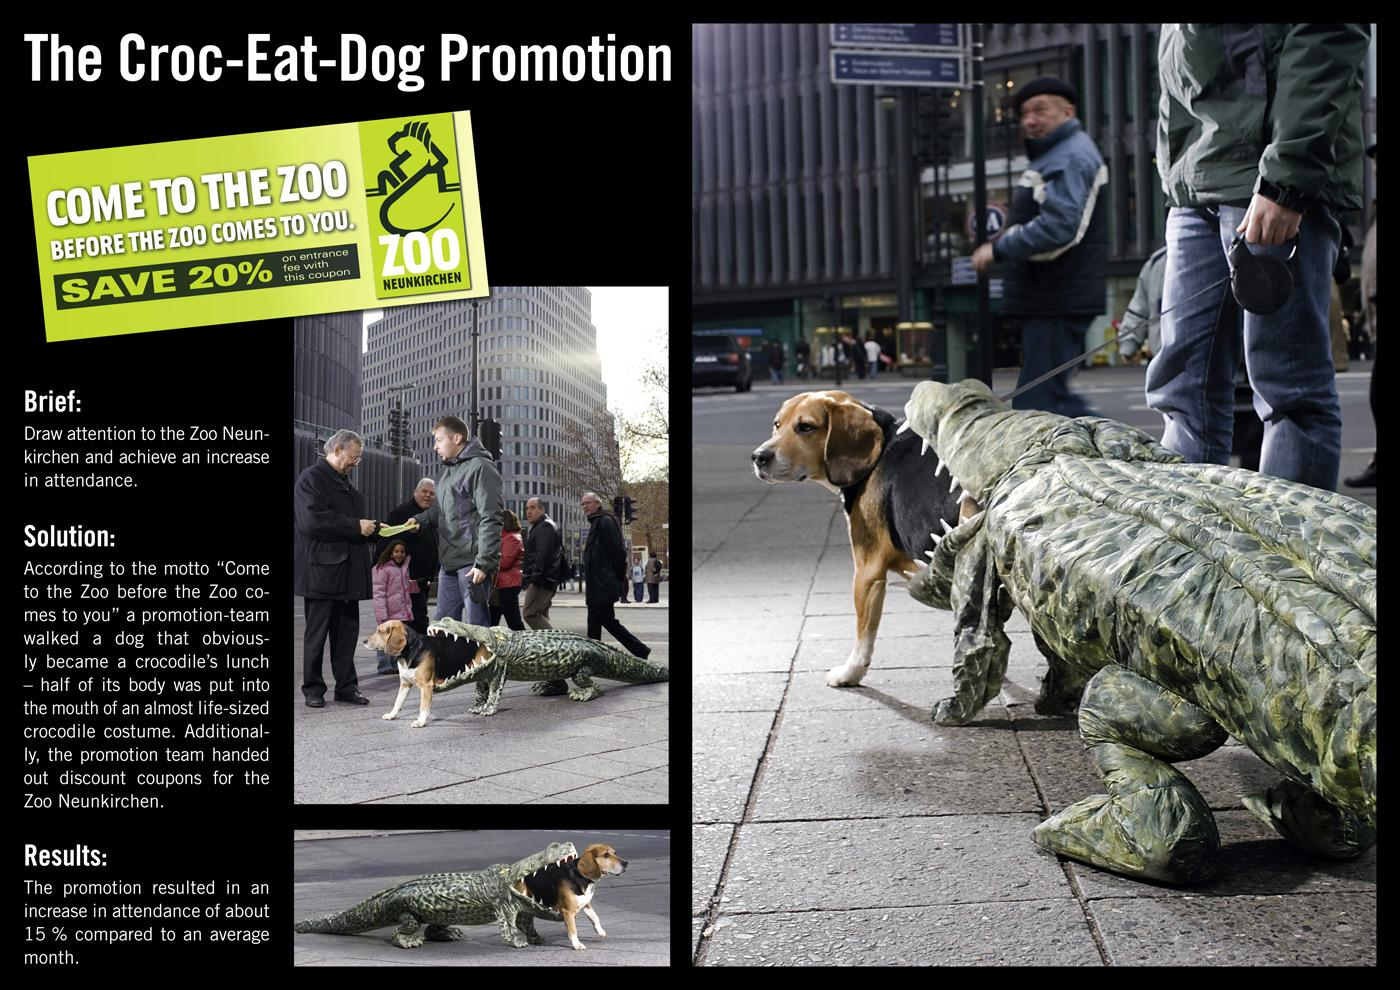 The Croc-eats-dog Promotion